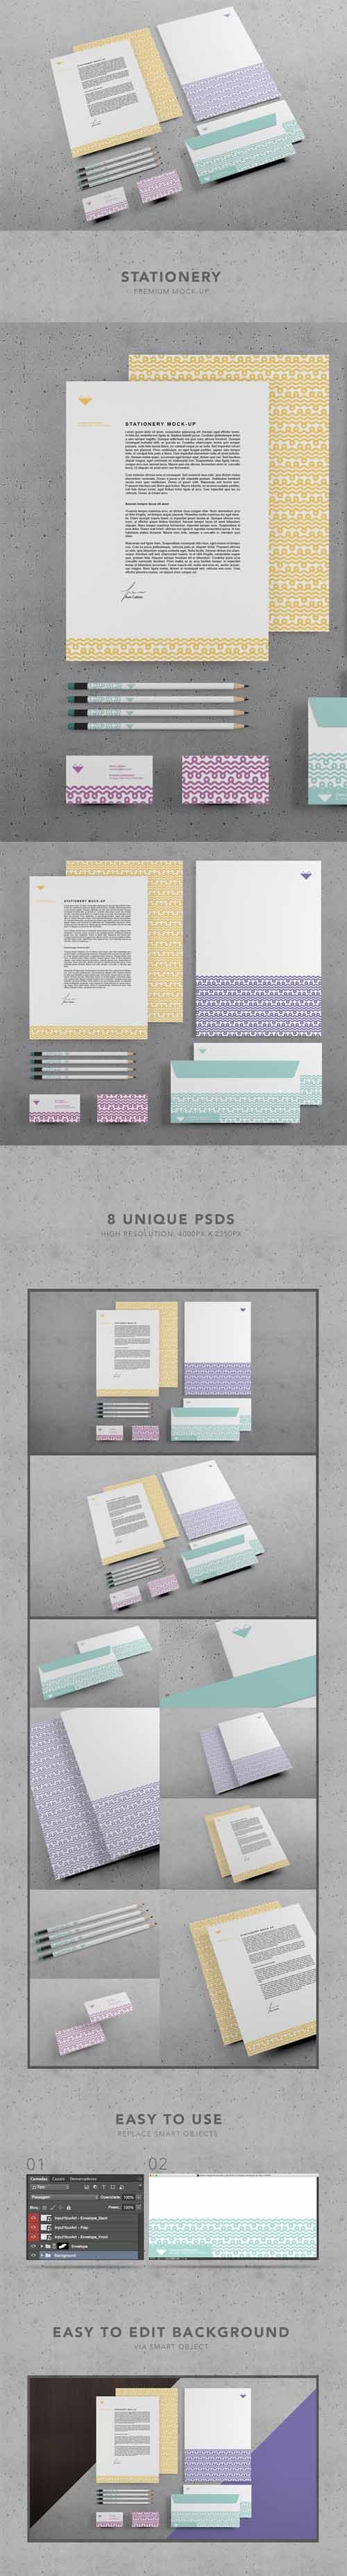 Branding Stationery premium mock-up 398125